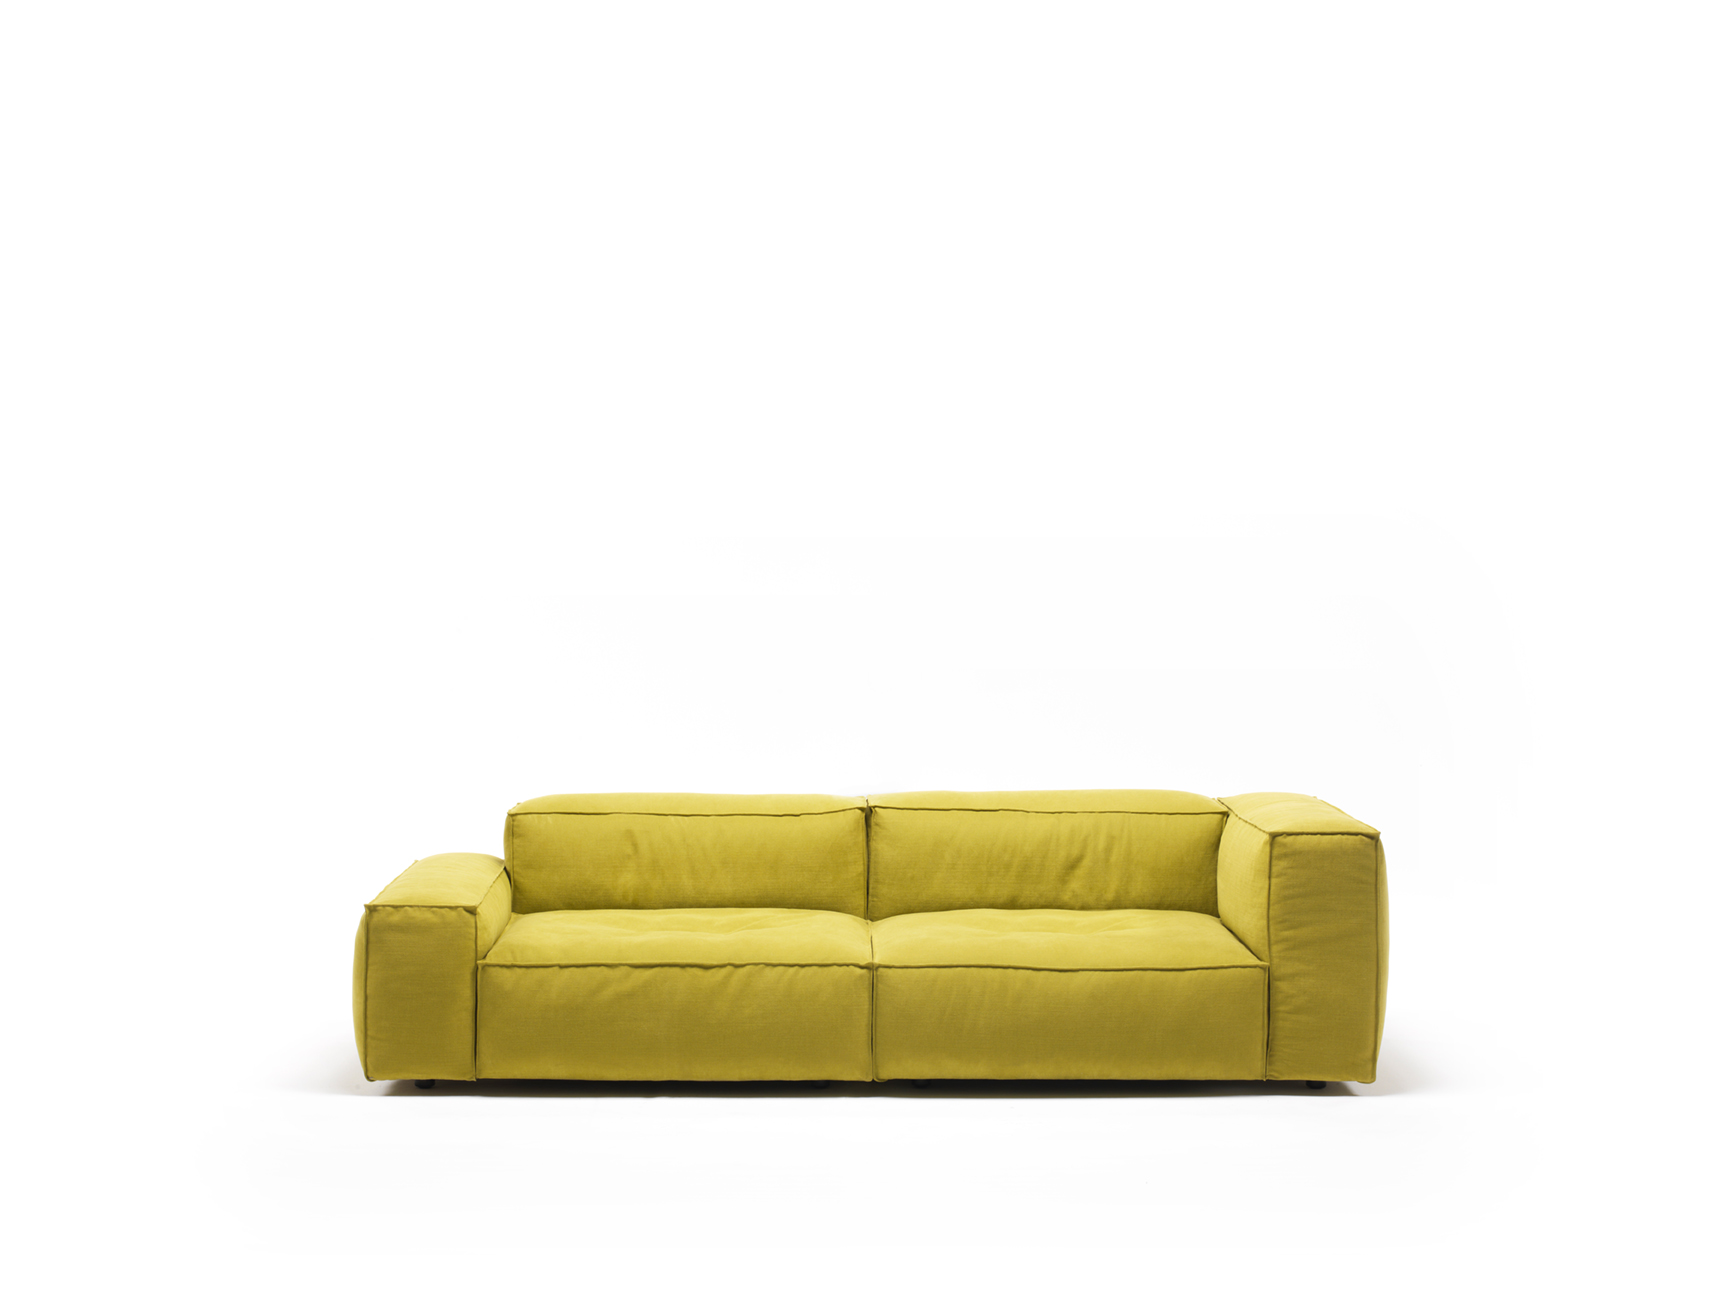 Living Divani The Wall Sofa Designwebstore Neowall Sofa Mit Niedriger Armlehne Rechts Stoff Level